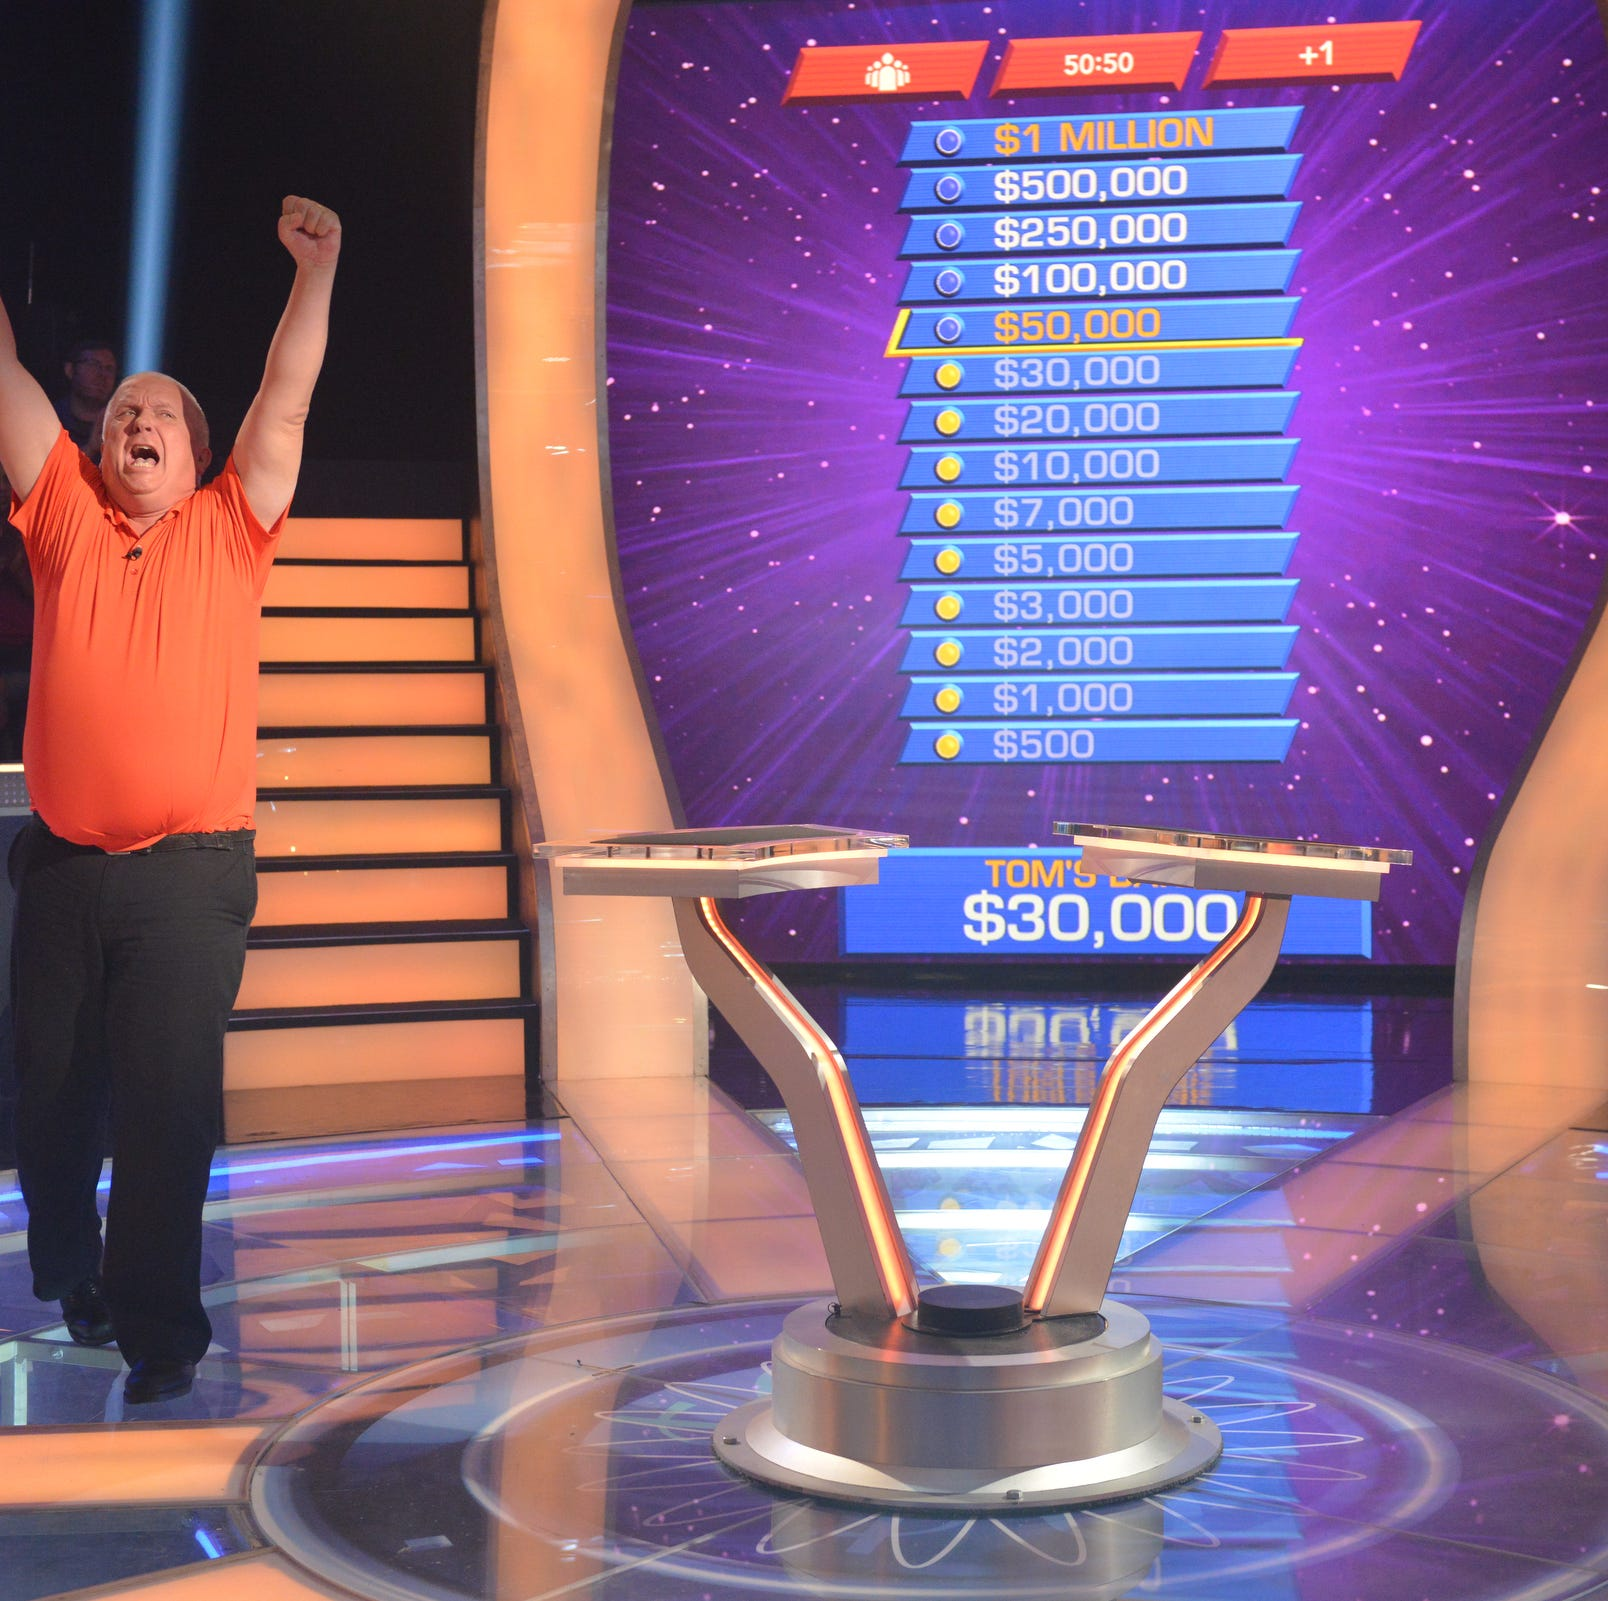 Longtime local sportswriter wins big on 'Who Wants to Be a Millionaire?'